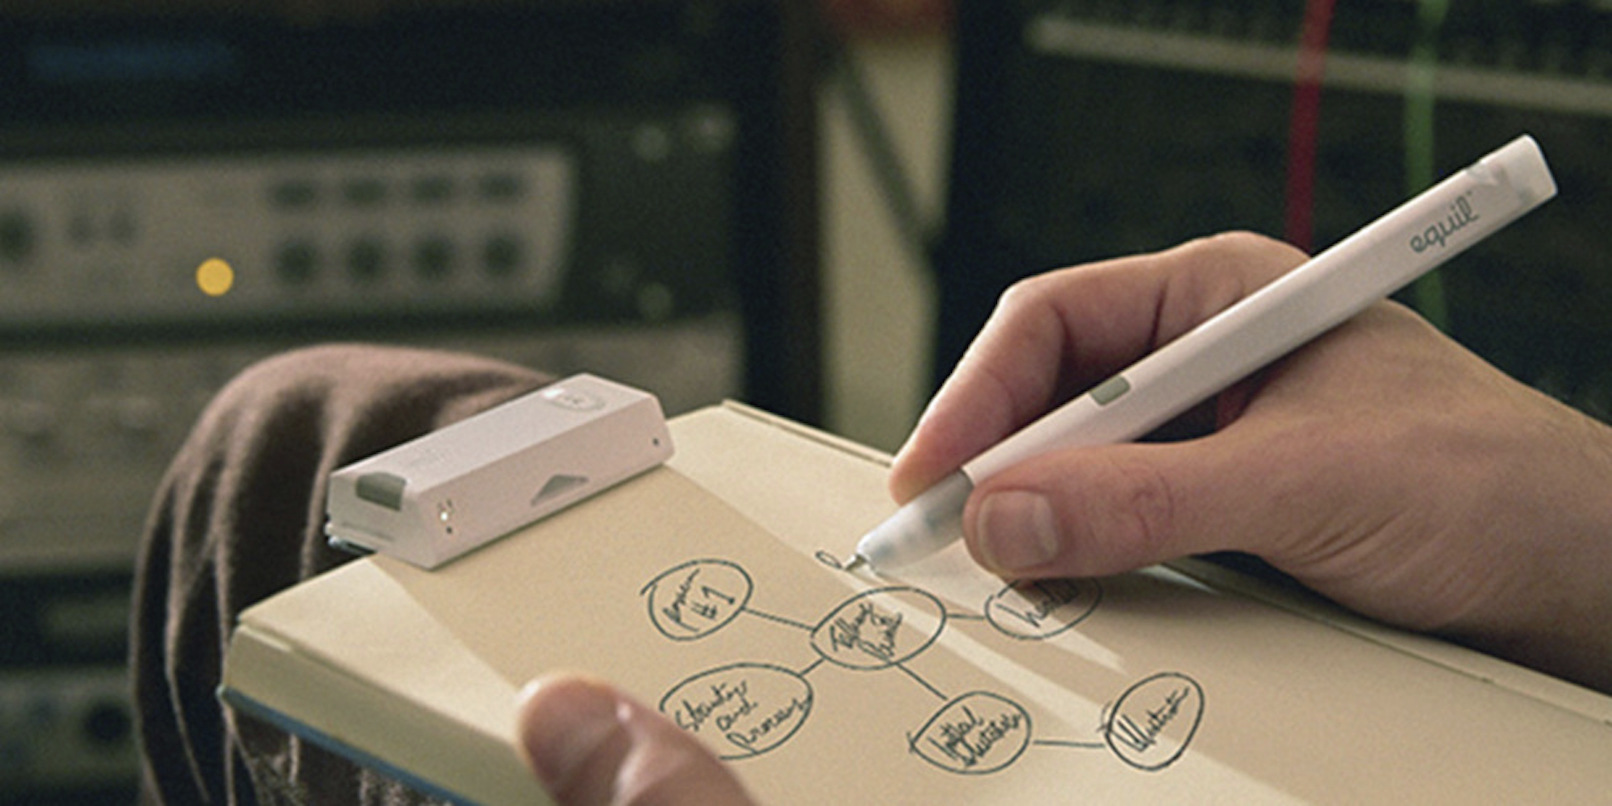 Digitalize your creations with Equil Digital and Ink Smartpen 2